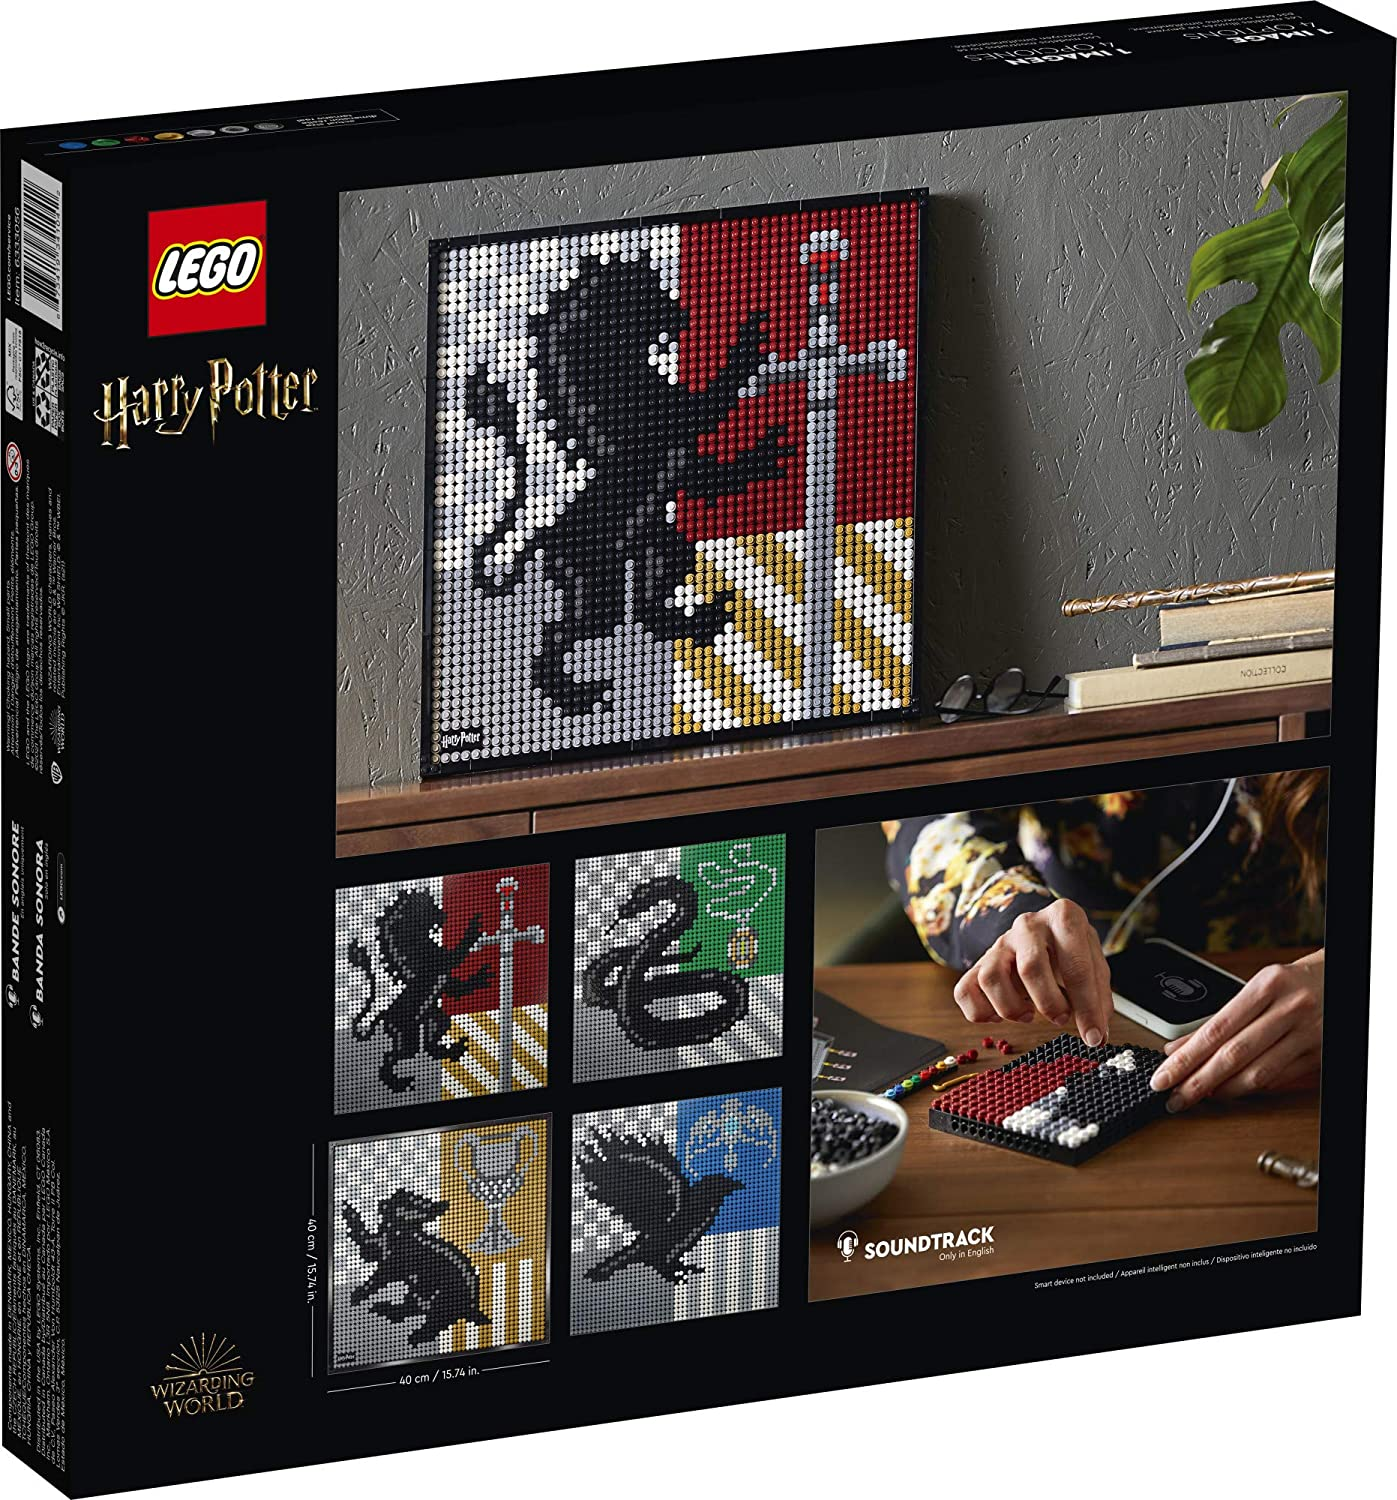 LEGO Art 31201 Harry Potter™ Hogwarts™ Crests, New 2021 (4249 Pieces)